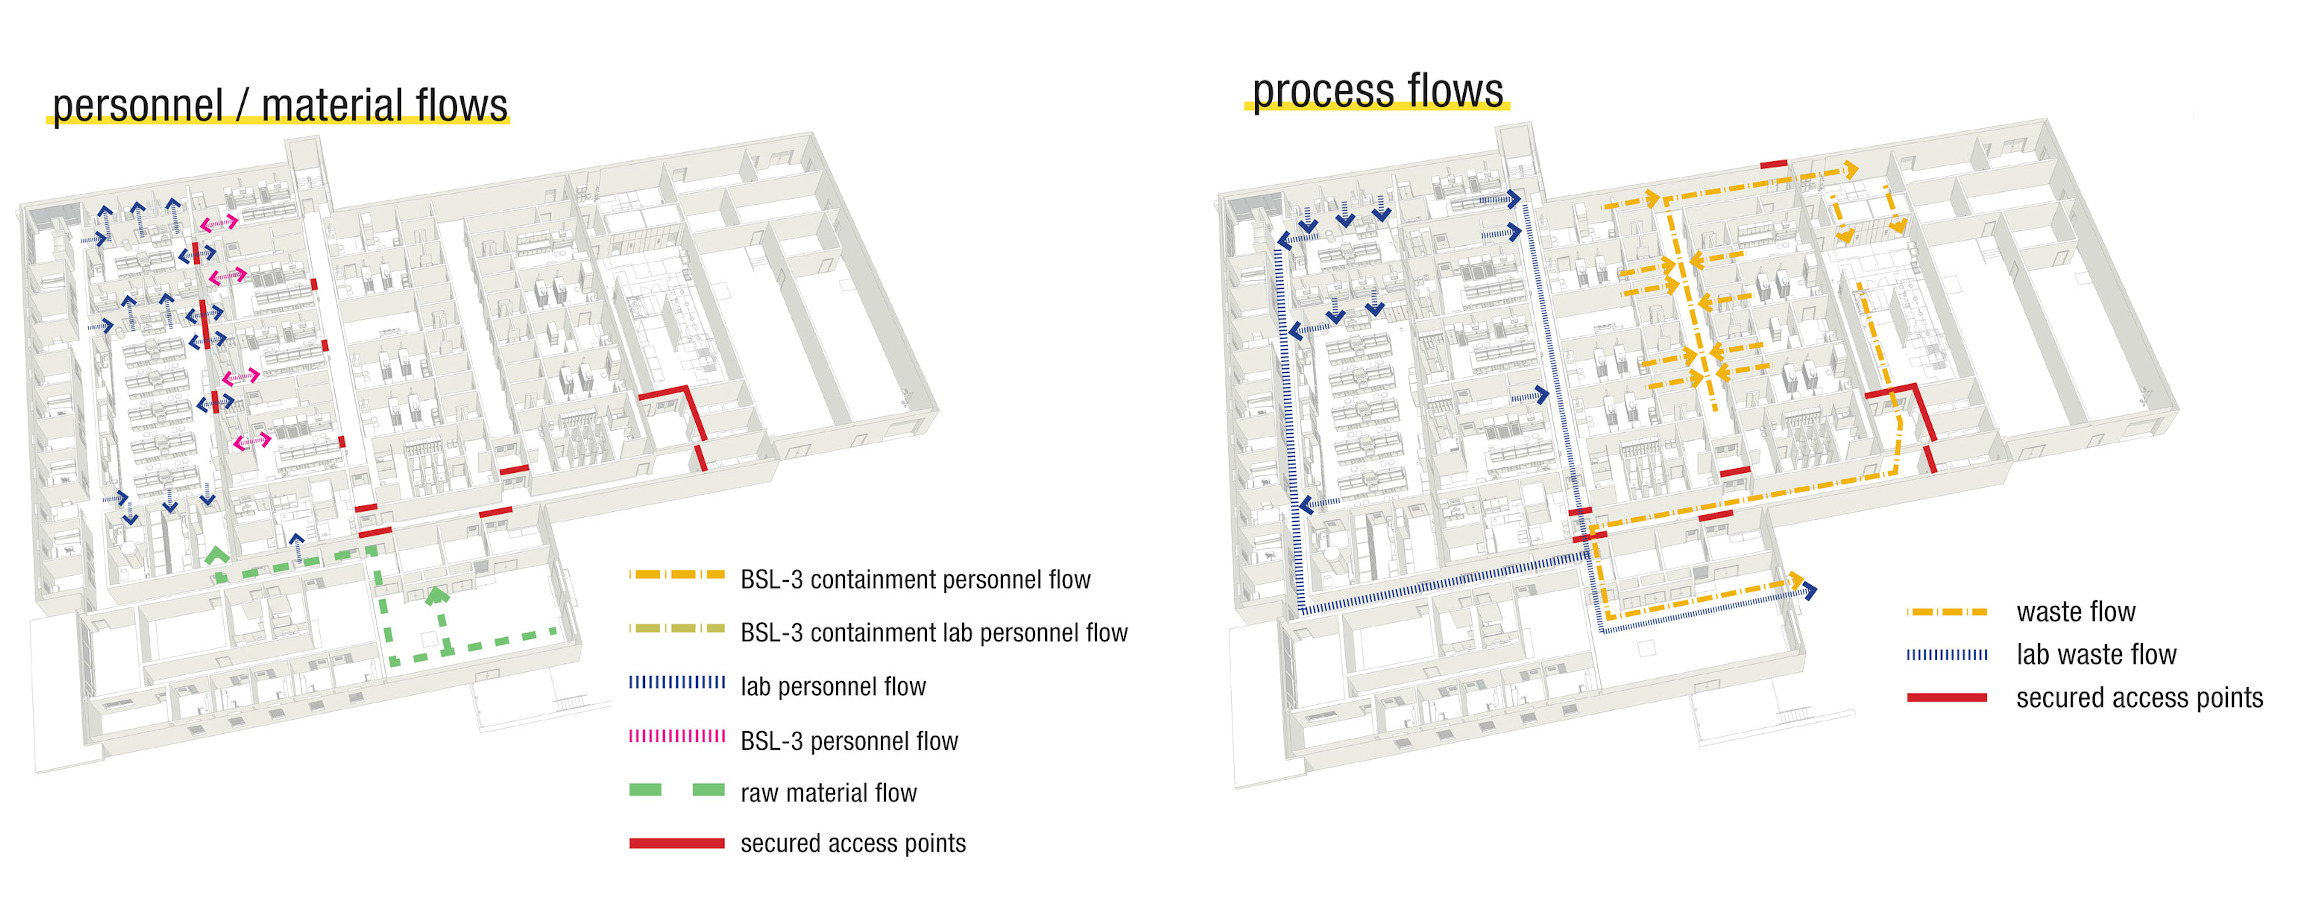 BSL-3 Personnel, Material, and Process Flows